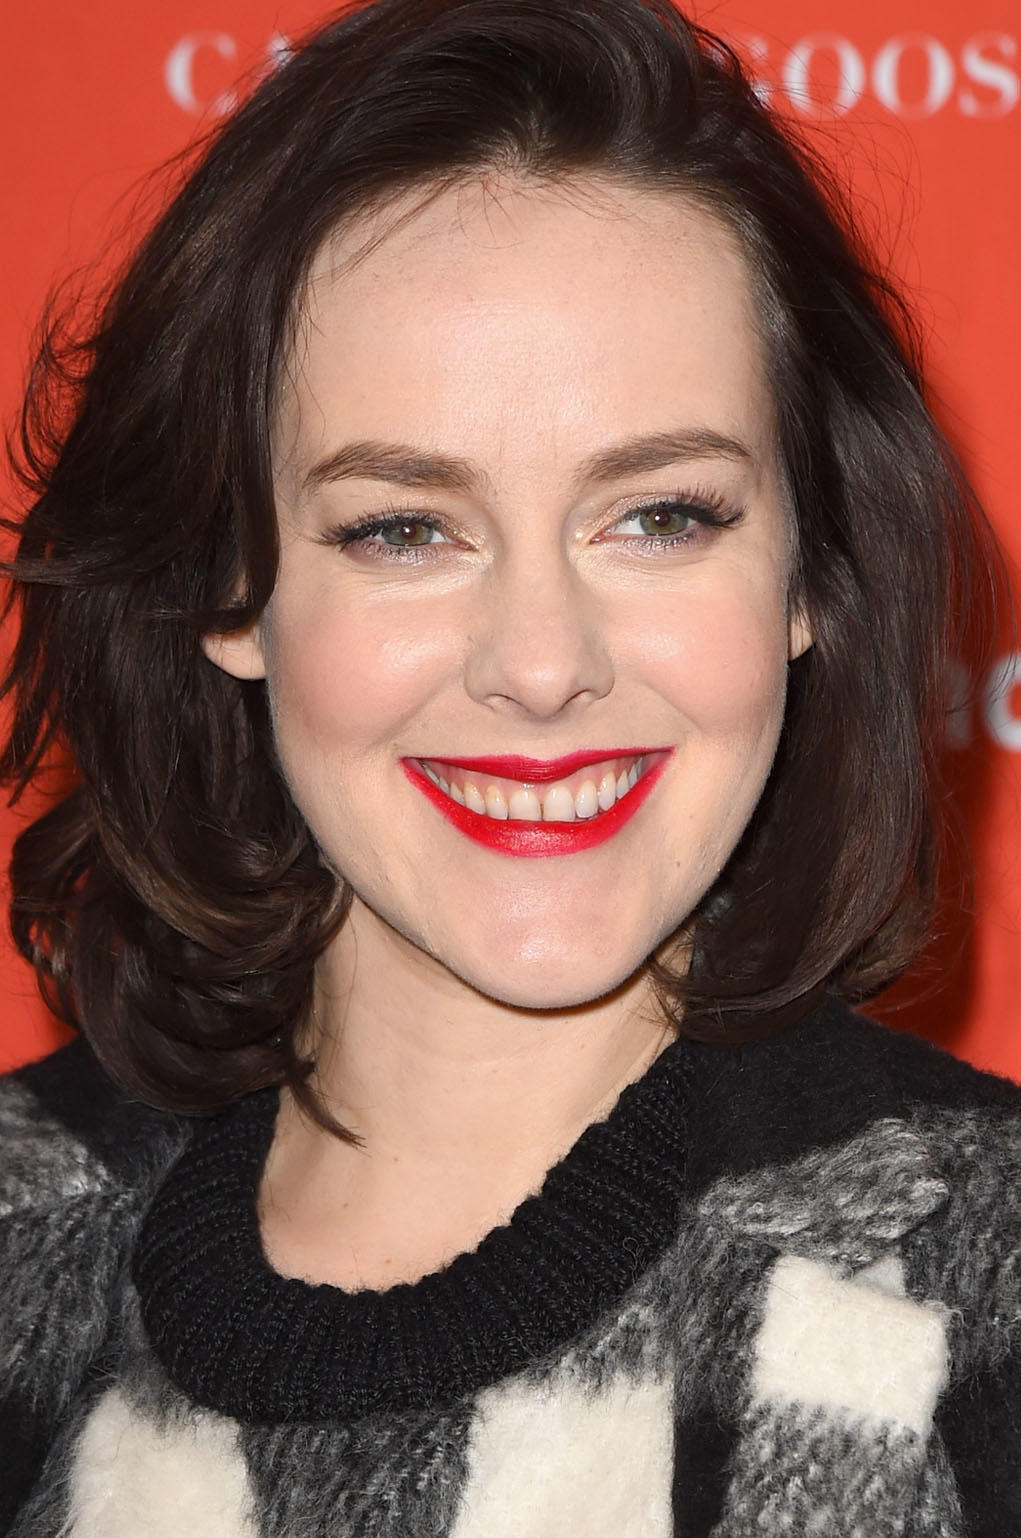 Jena Malone at the